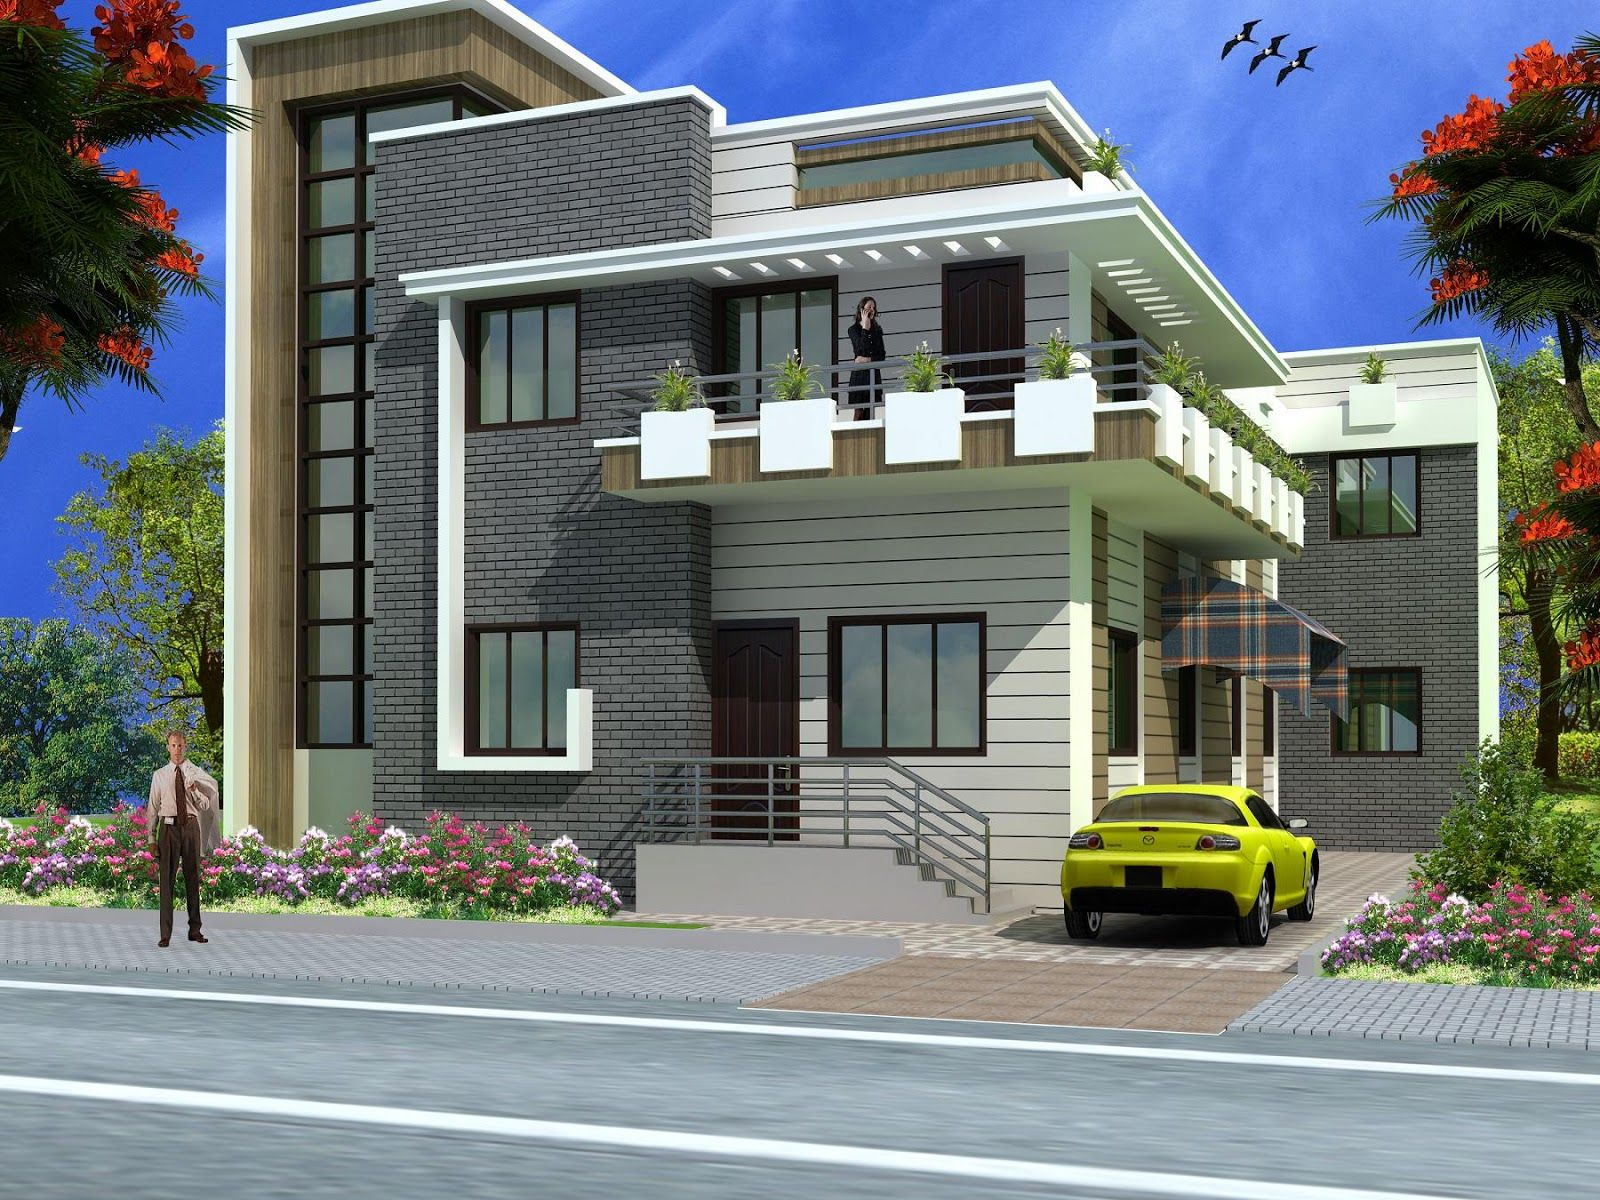 Front elevation of house design in indiaFront Elevation Indian House Designs   Houses   Pinterest   Indian  . Home Elevation Designs. Home Design Ideas